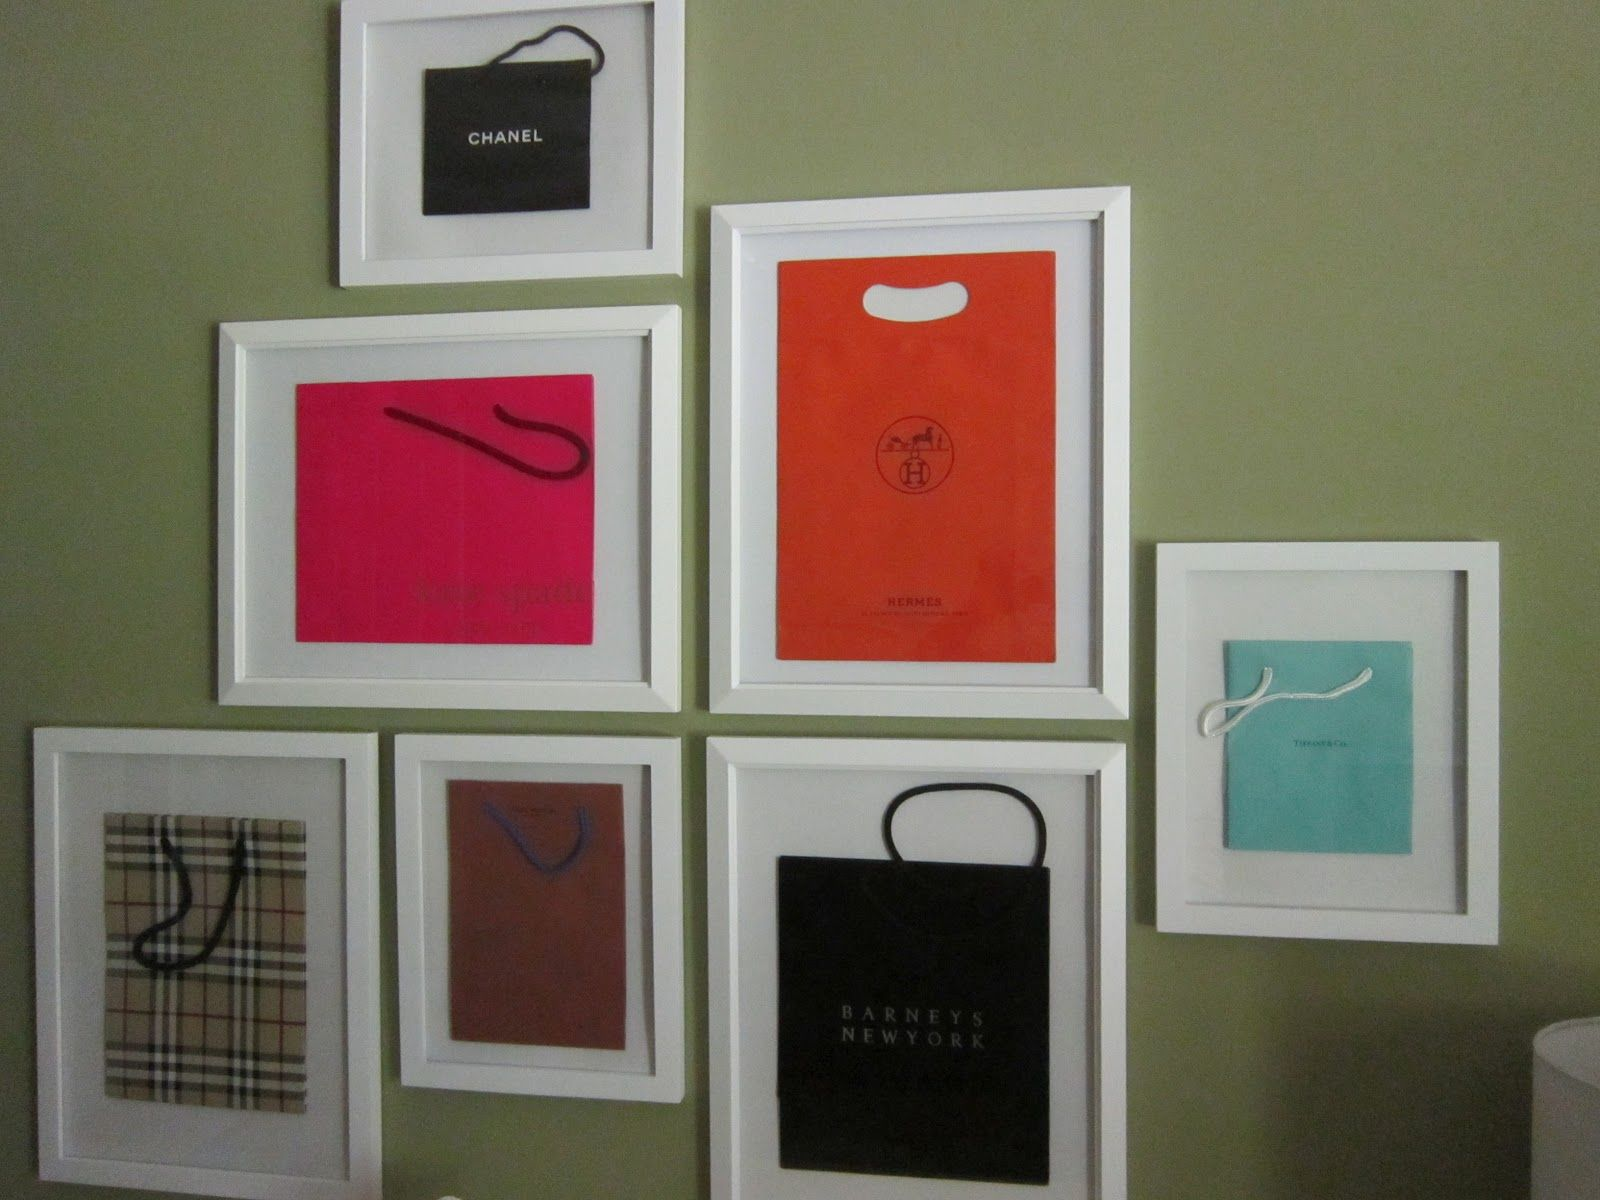 I Love This Idea Frame Expensive Ping Bags As Art For Your Fashionista